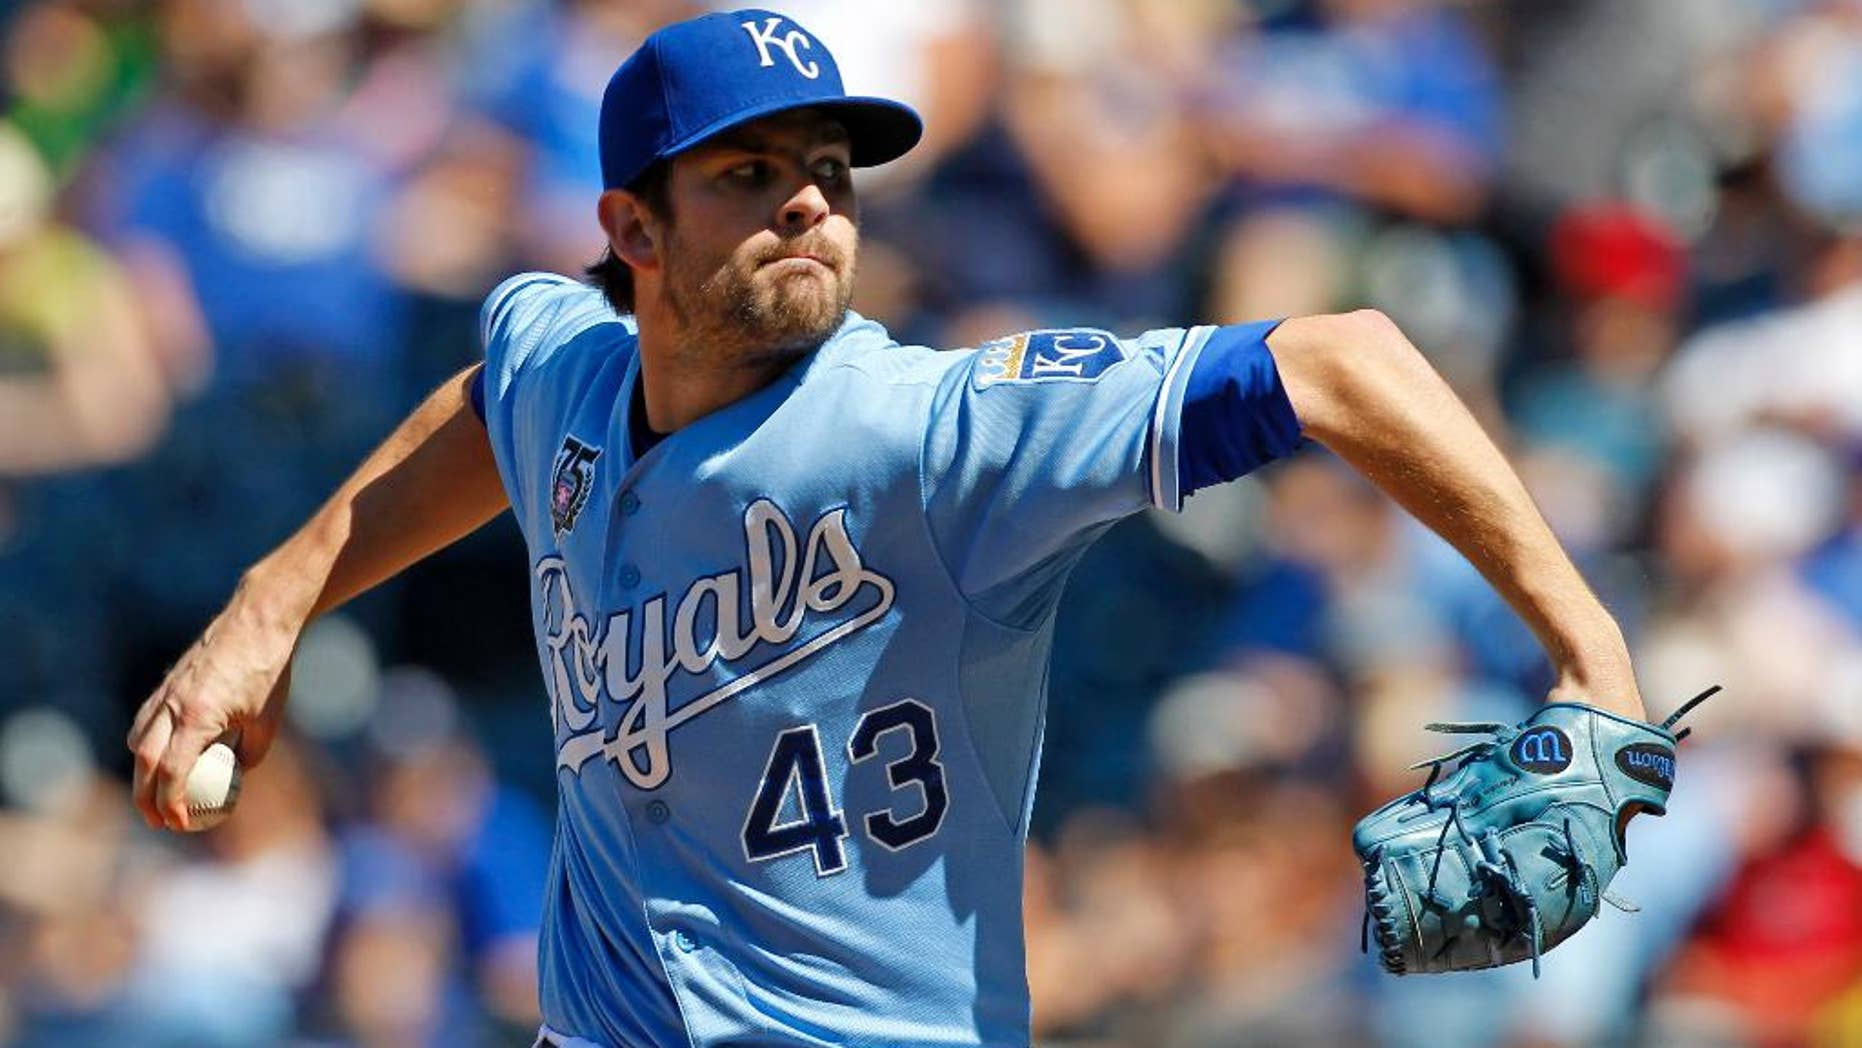 FILE - In this July 27, 2014, file photo, Kansas City Royals relief pitcher Aaron Crow throws to a batter in the ninth inning of a baseball game against the Cleveland Indians at Kauffman Stadium in Kansas City, Mo. The former first-round draft pick was traded Friday, Nov. 28, 2014, from the Royals to the Miami Marlins for left-hander Brian Flynn and right-hander Reid Redman.  (AP Photo/Colin E. Braley, File)